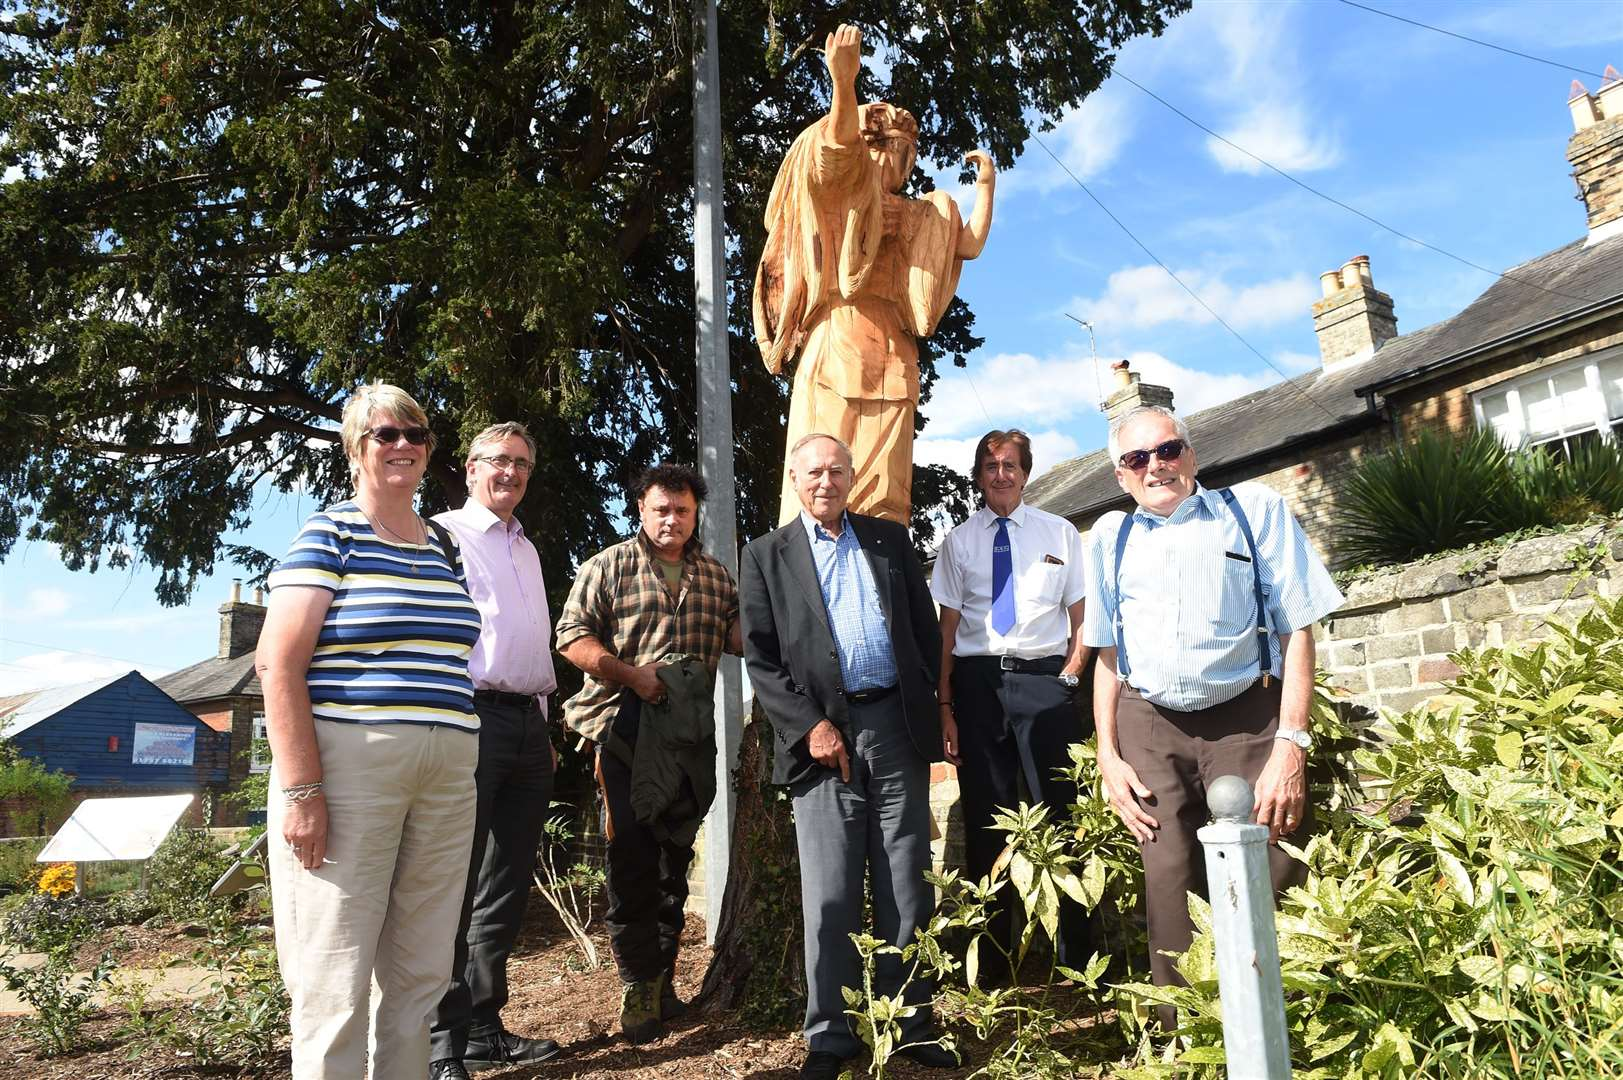 A project, which pays homage to Sudbury's silk weaving industry, is nearing completion..A statue in Weavers' Piece garden, carved out of a tree is a new edition to the site...Pictured: Marian Bailey, Chris Storey, John Moore (carpenter), John Sayers, Lyndon Collier and Andy Howes....PICTURE: Mecha Morton ... (16092491)